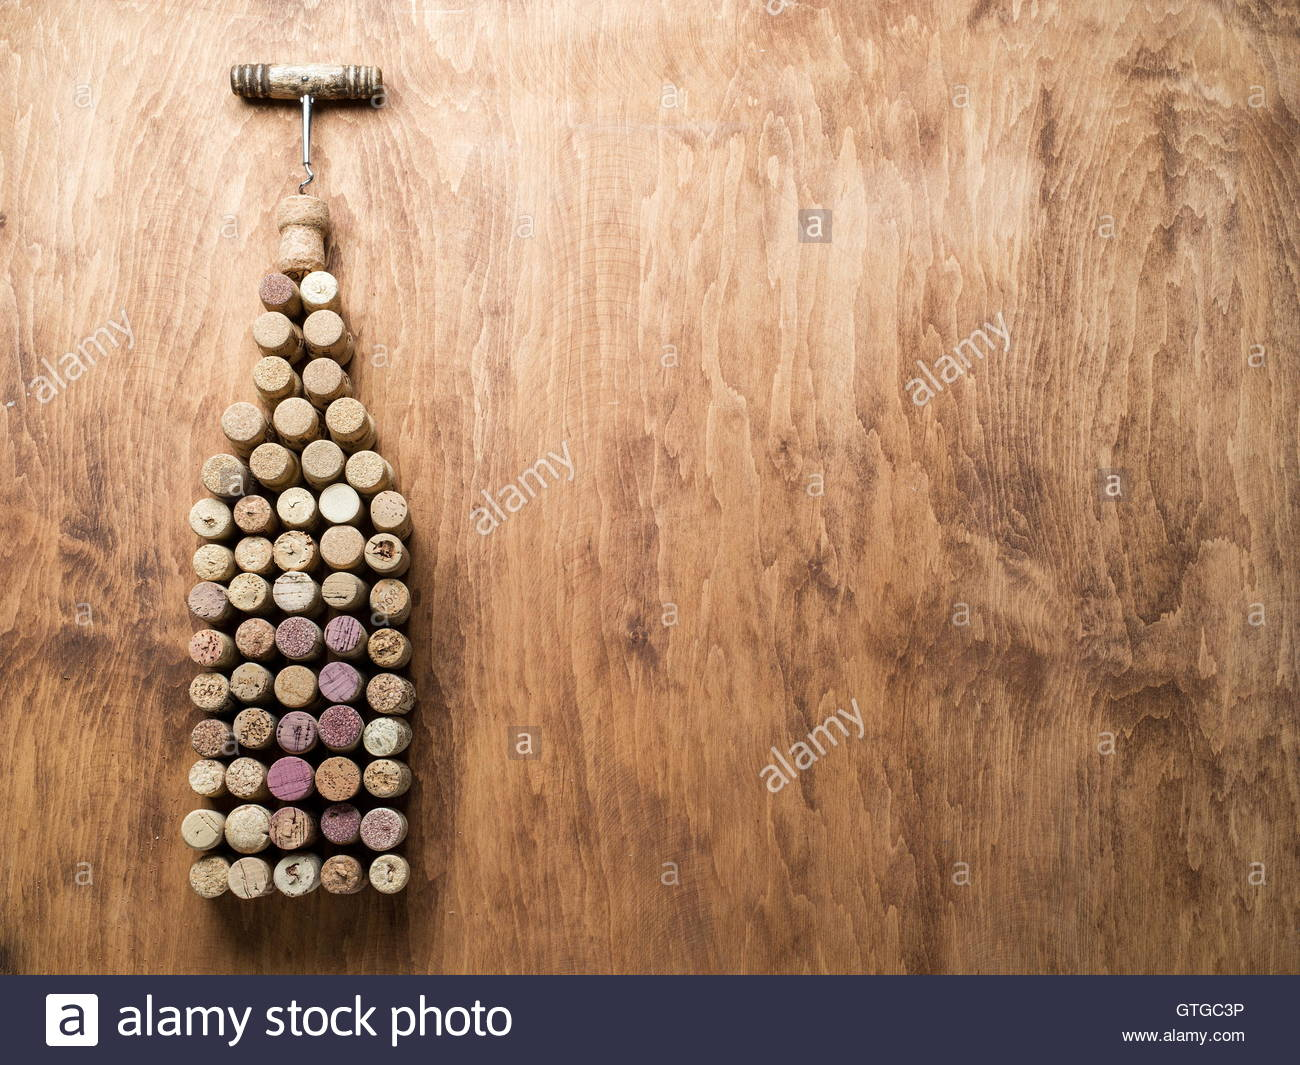 Wine corks in the shape of wine bottle on the wooden background 1300x1065